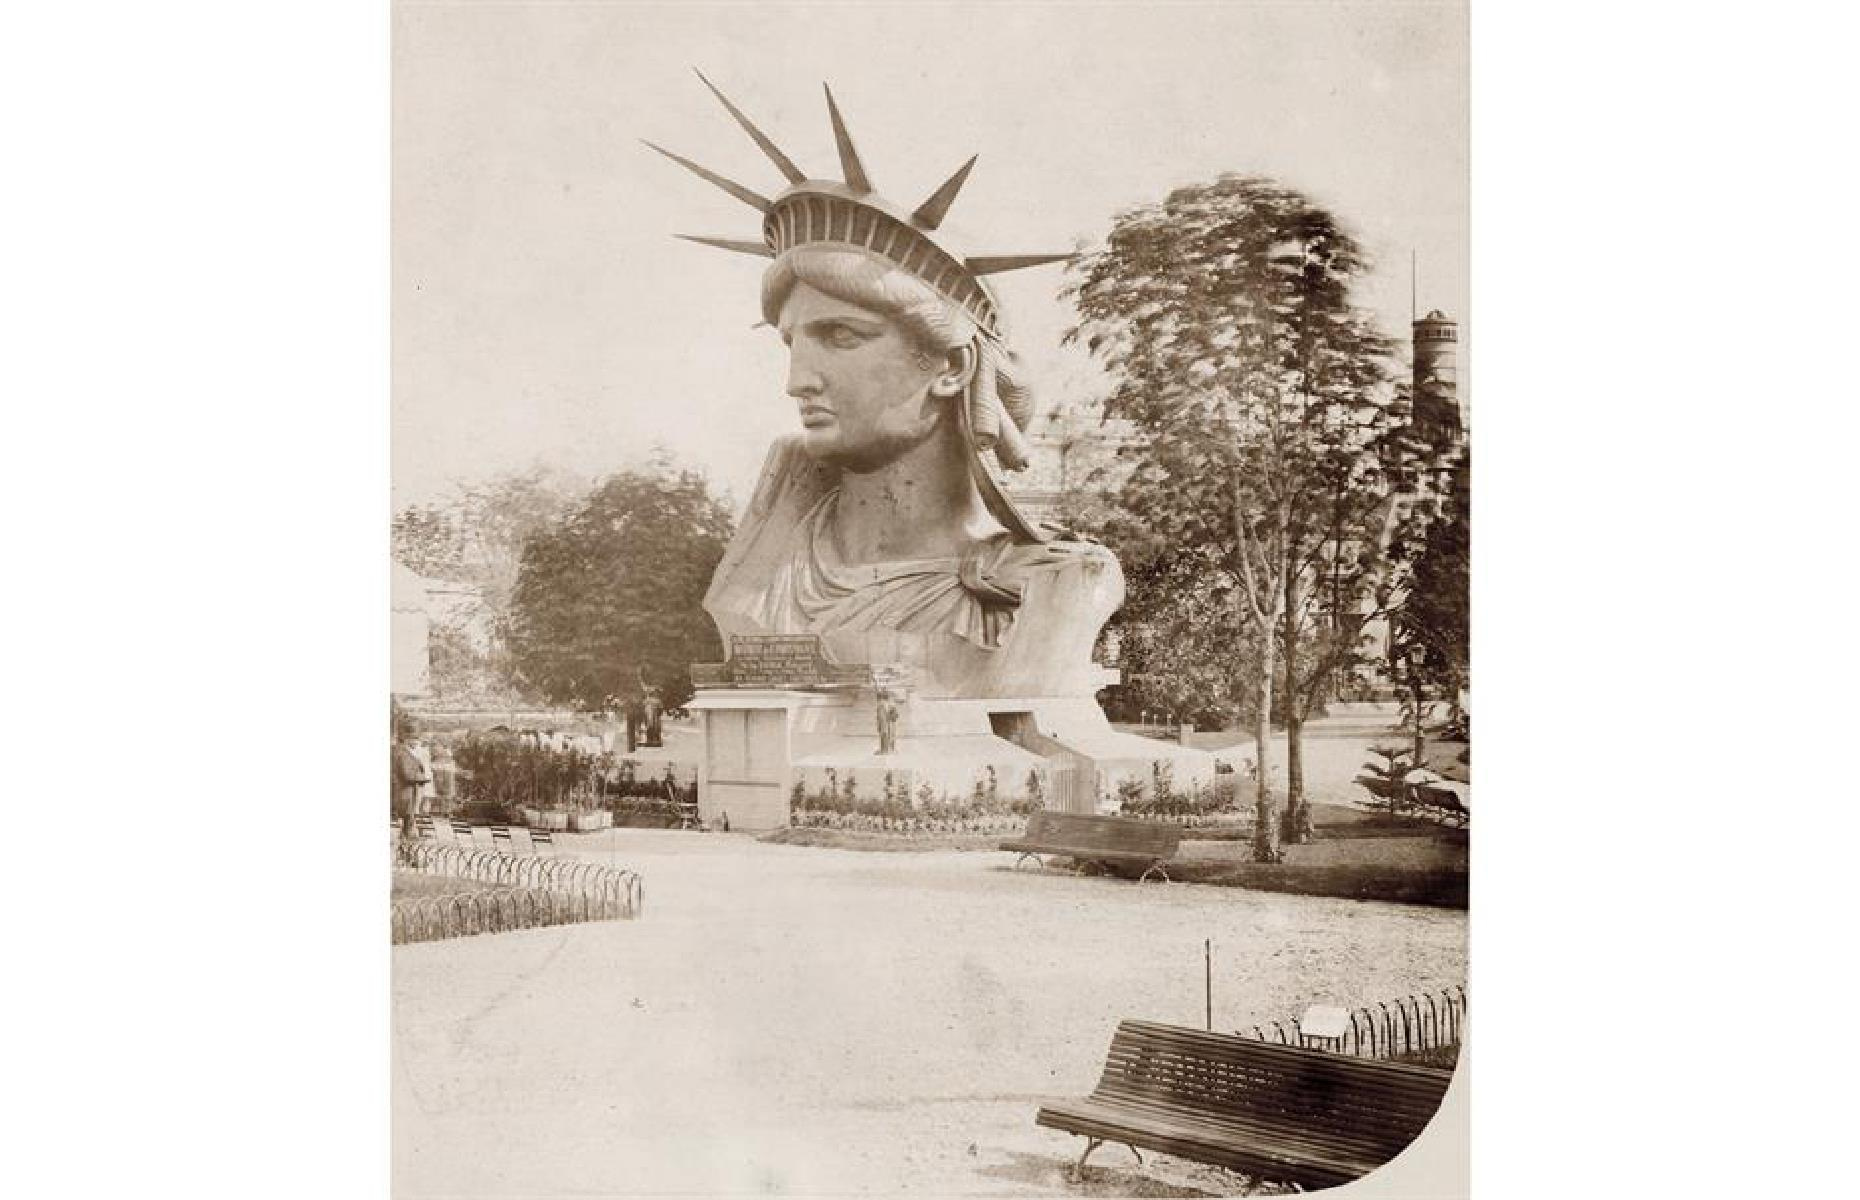 Slide 18 of 41: Before she made it across the pond, though, Lady Liberty was presented in sections at Paris' World's Fair in 1878. This photo shows her gargantuan head propped on a pedestal on display at the event.